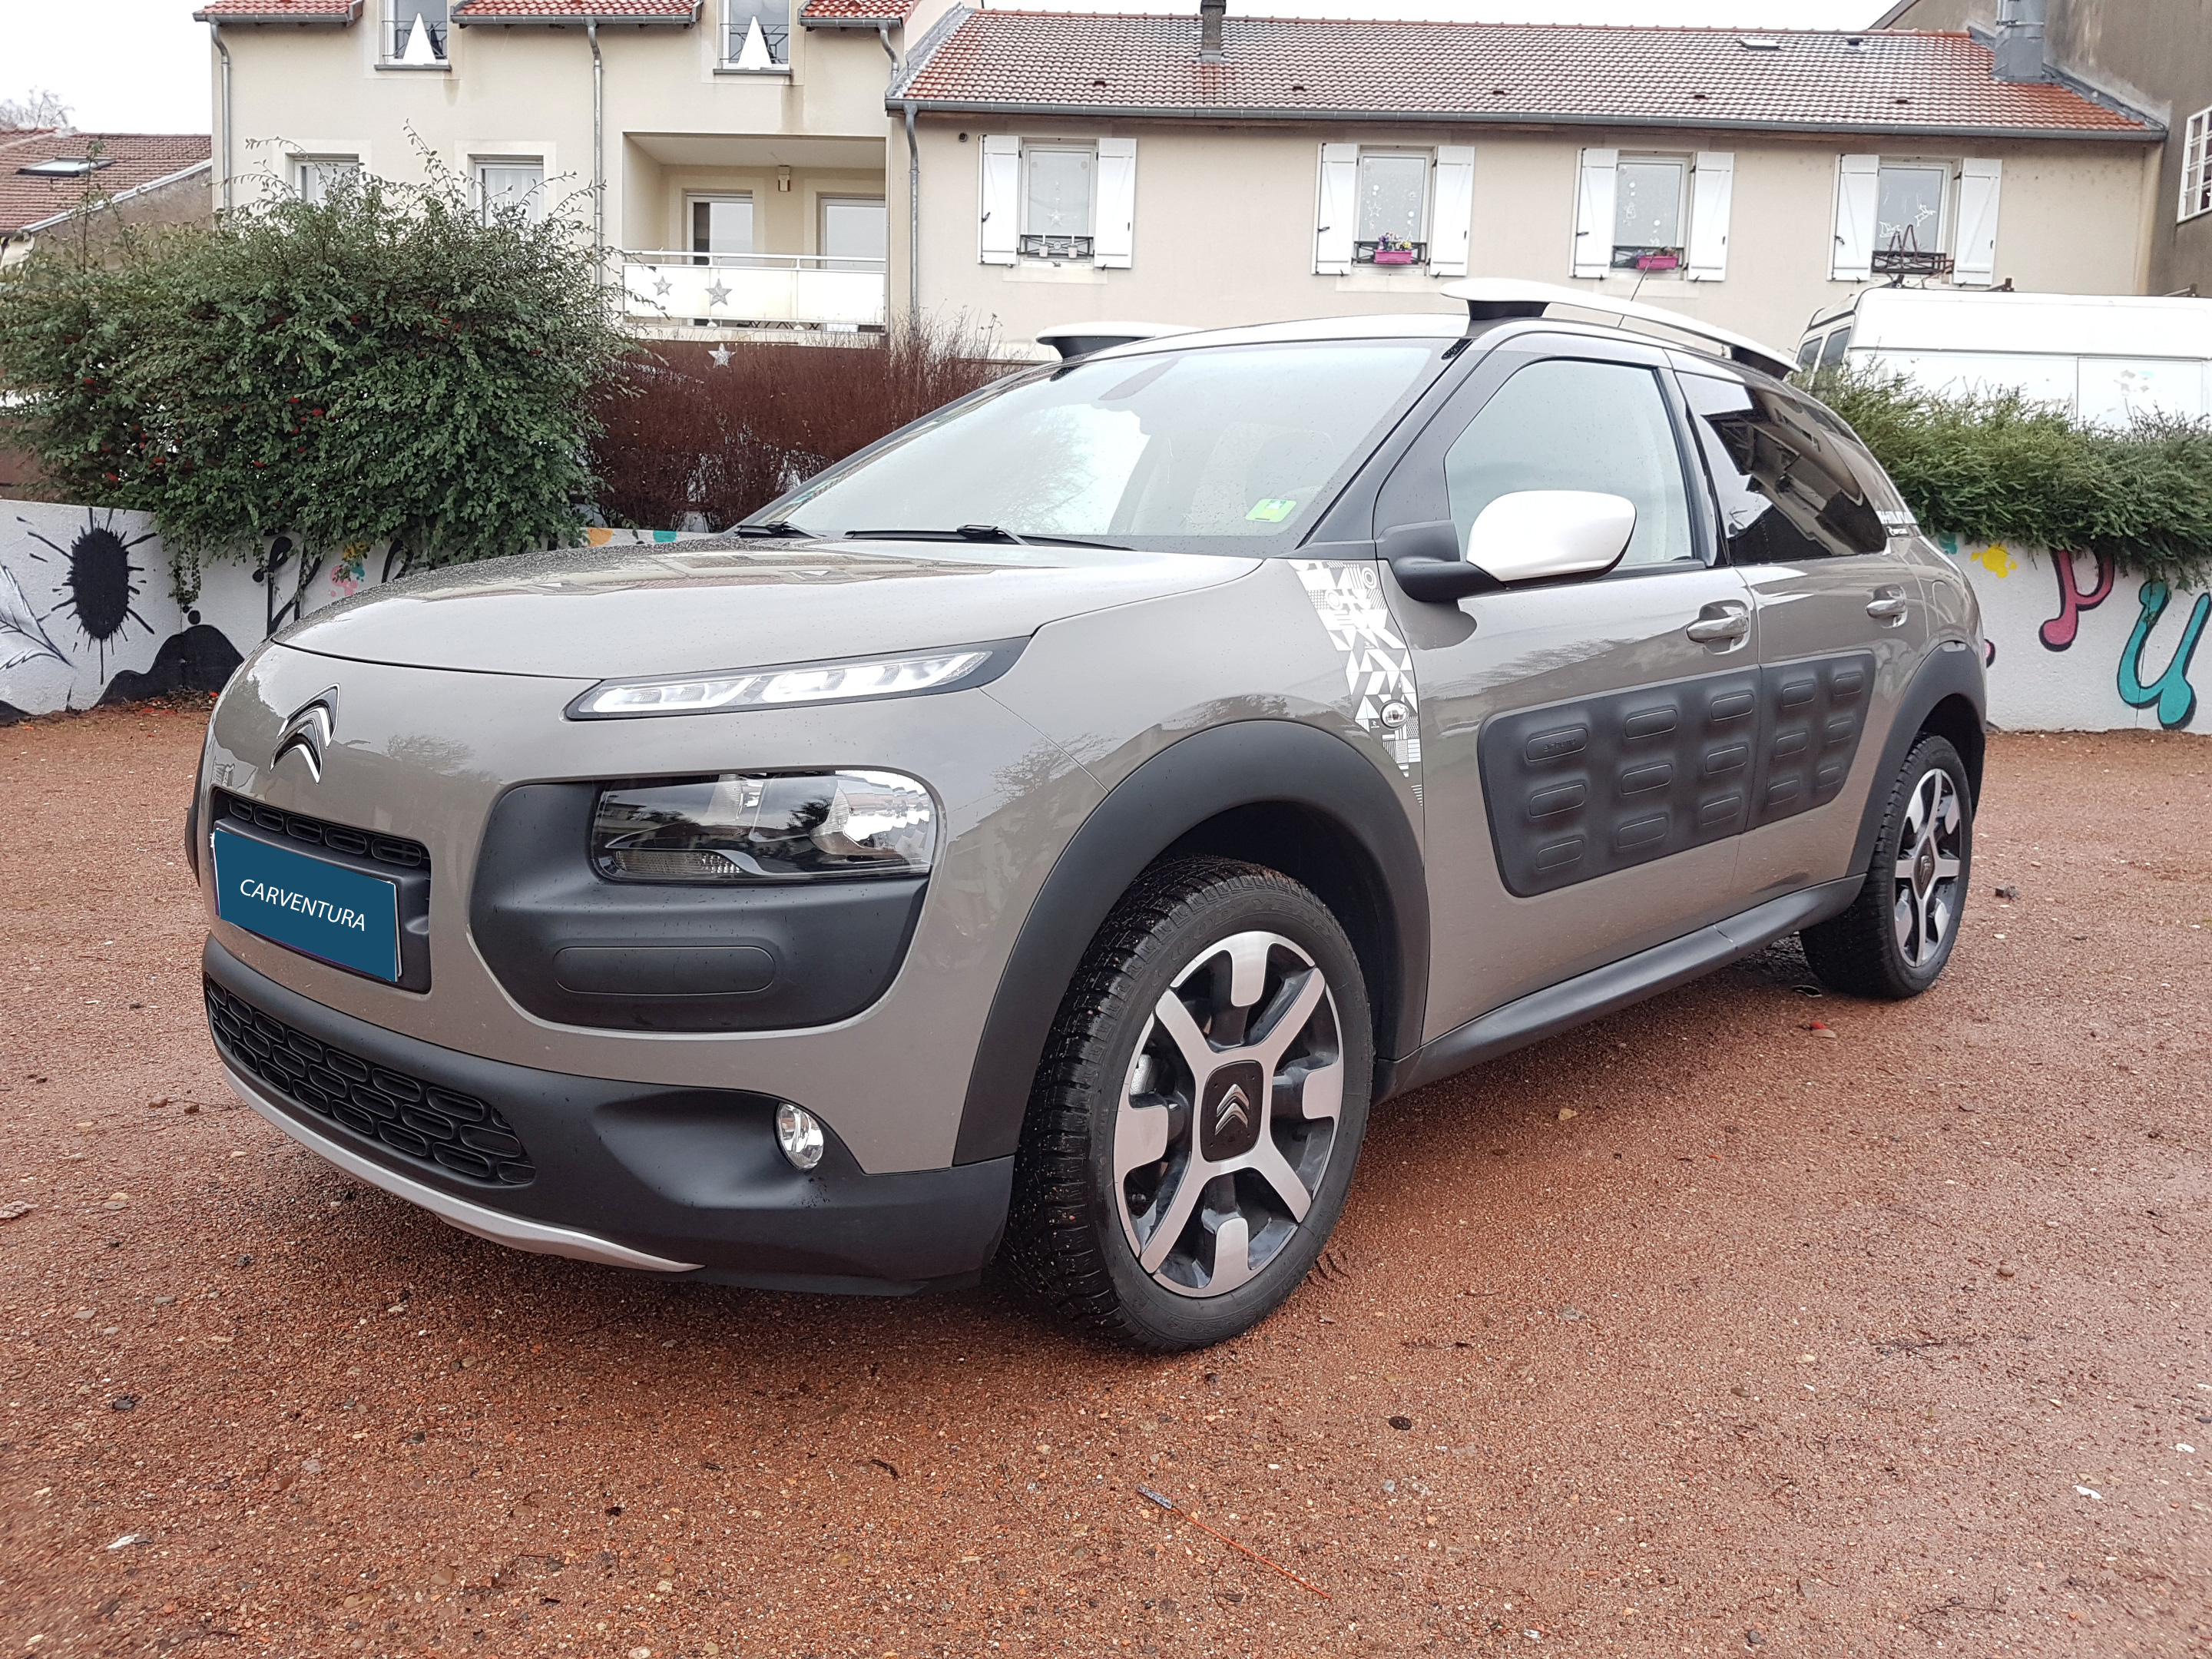 citroen c4 cactus 1 6 bluehdi 100 ripcurl carventura. Black Bedroom Furniture Sets. Home Design Ideas